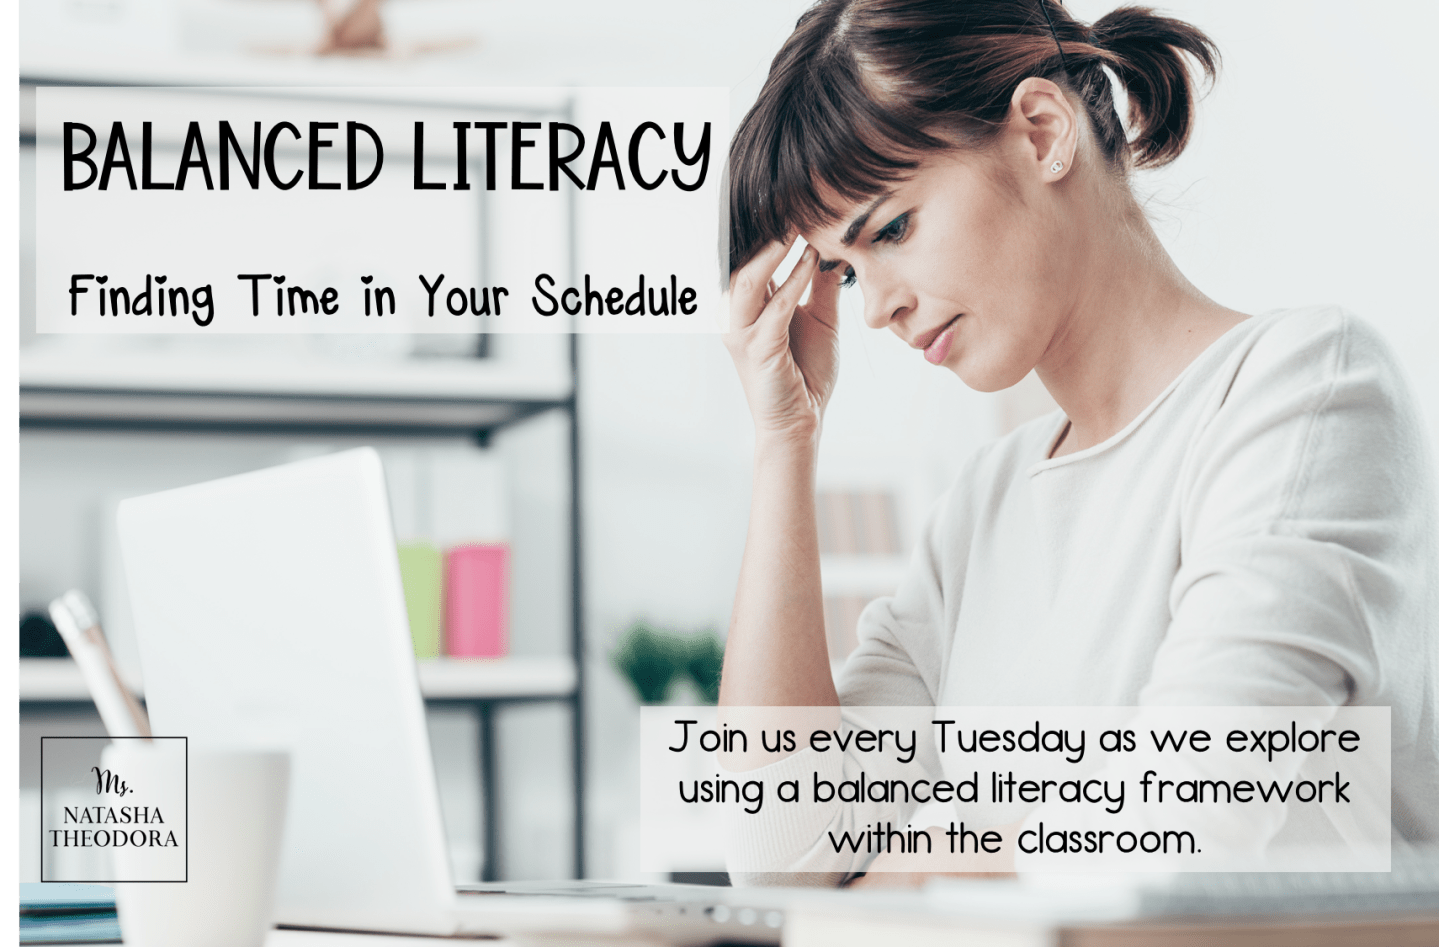 Balanced Literacy: Finding Time In Your Schedule